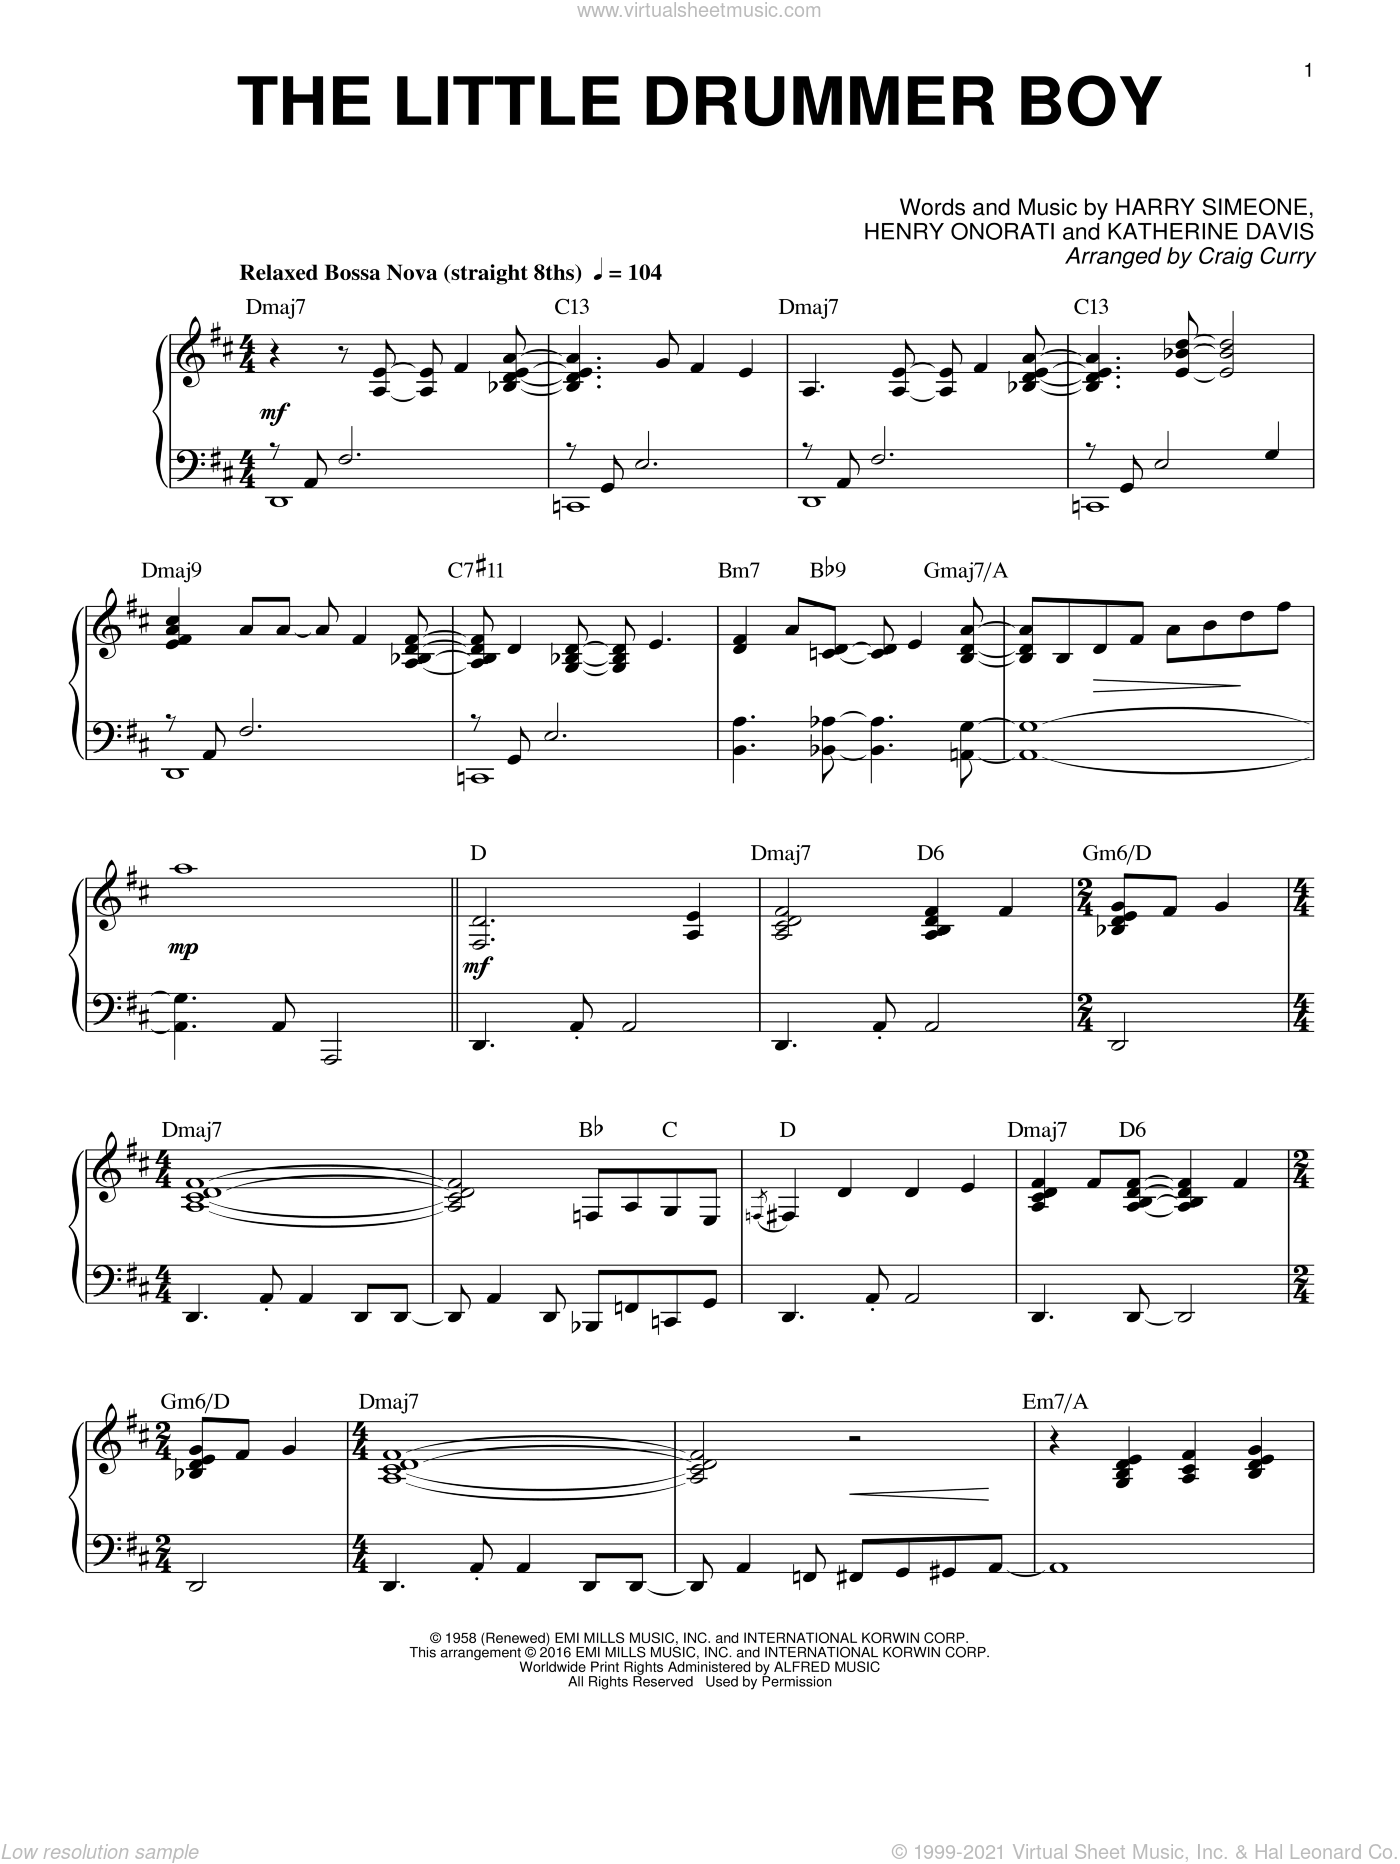 The Little Drummer Boy sheet music for piano solo by Katherine Davis, Craig Curry, Harry Simeone and Henry Onorati, intermediate skill level